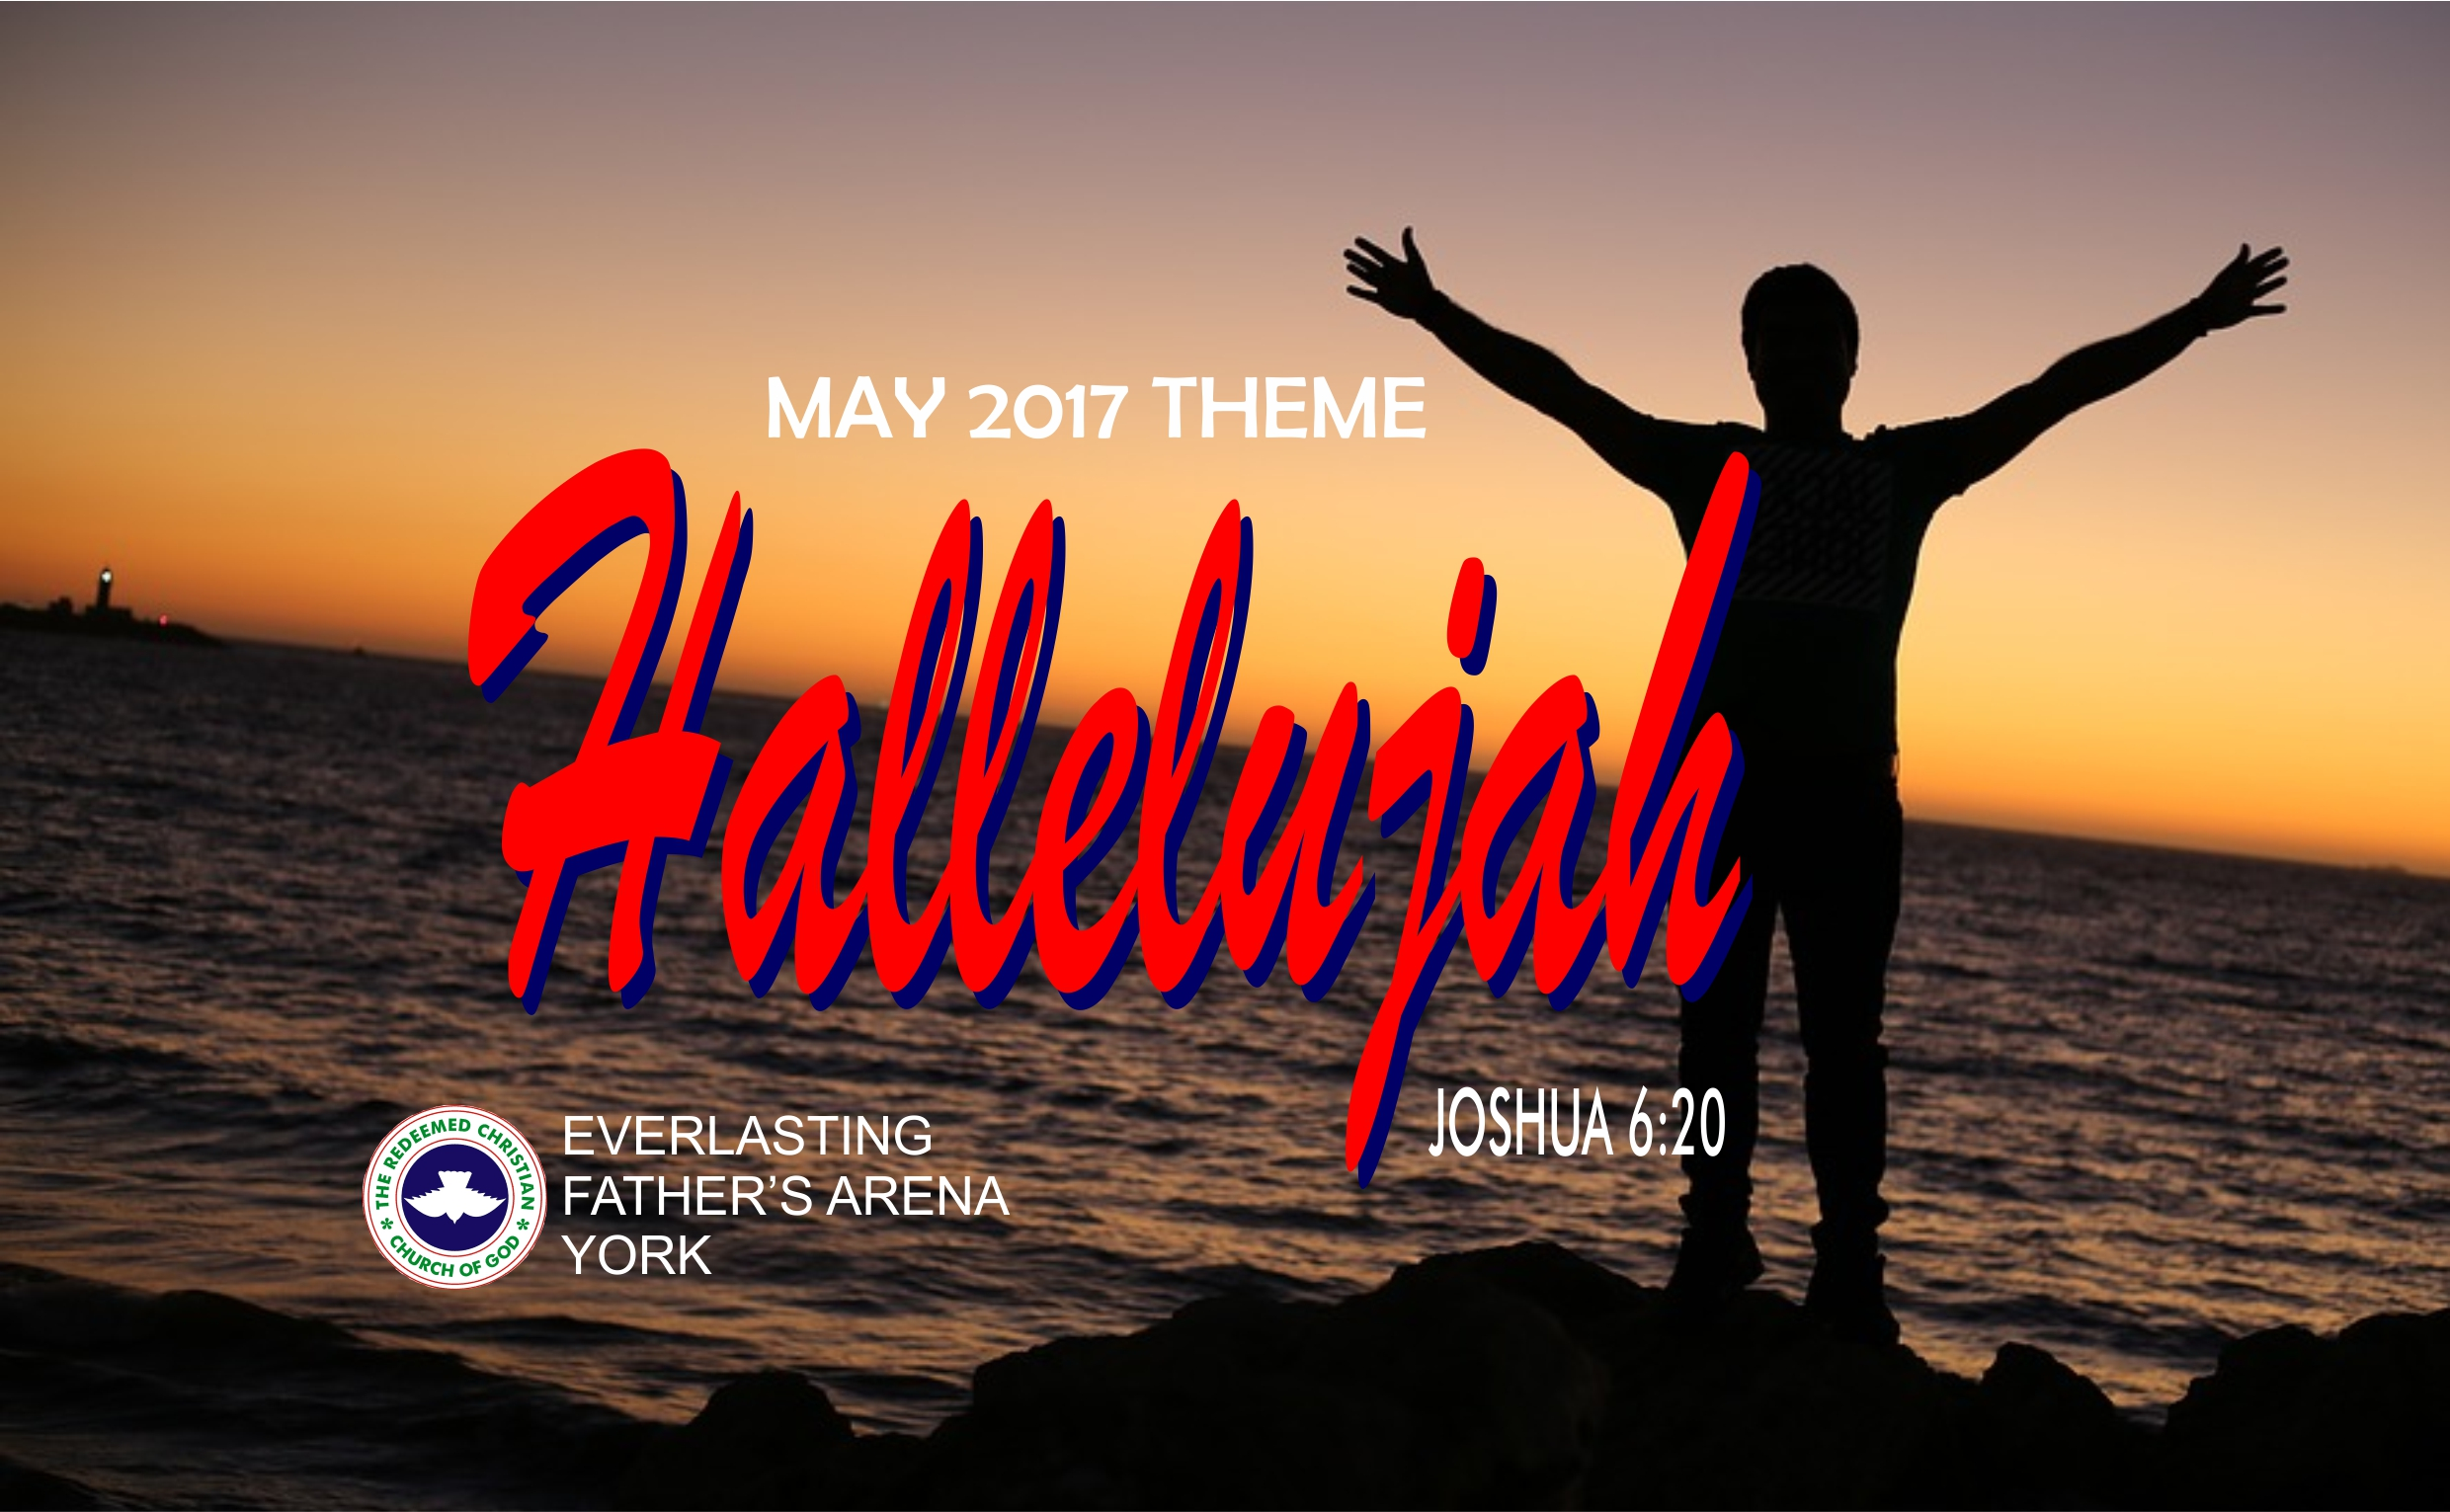 RCCG EFA York May 2017 Theme – Hallelujah (Joshua 6:20)